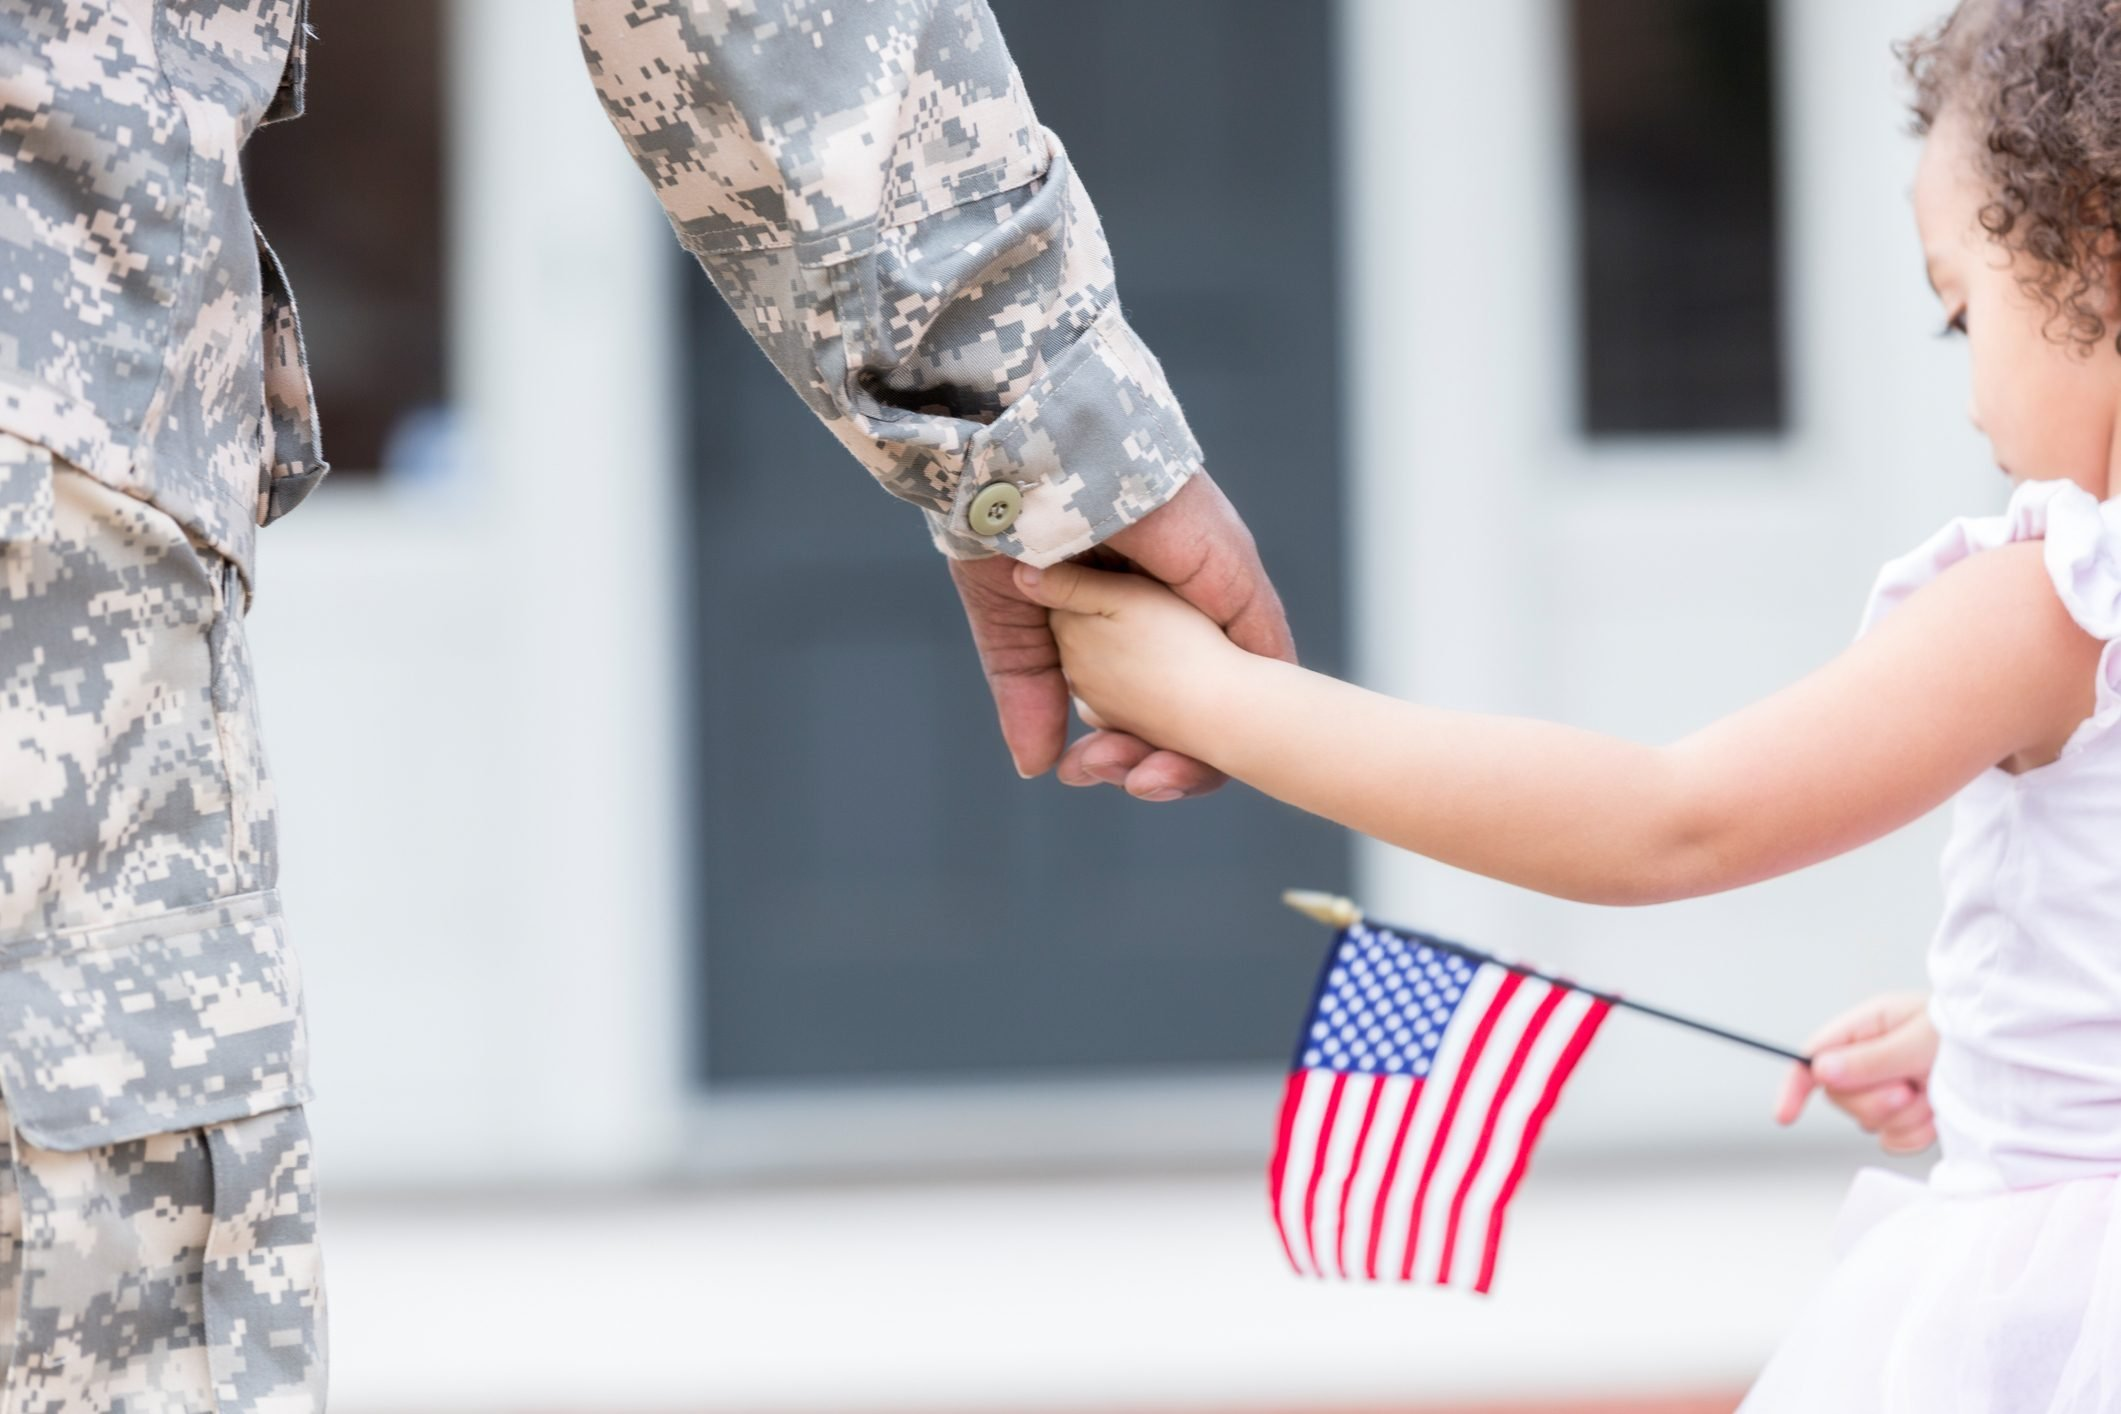 Soldier and his young daughter walk hand in hand and the daughter holds a small american flag